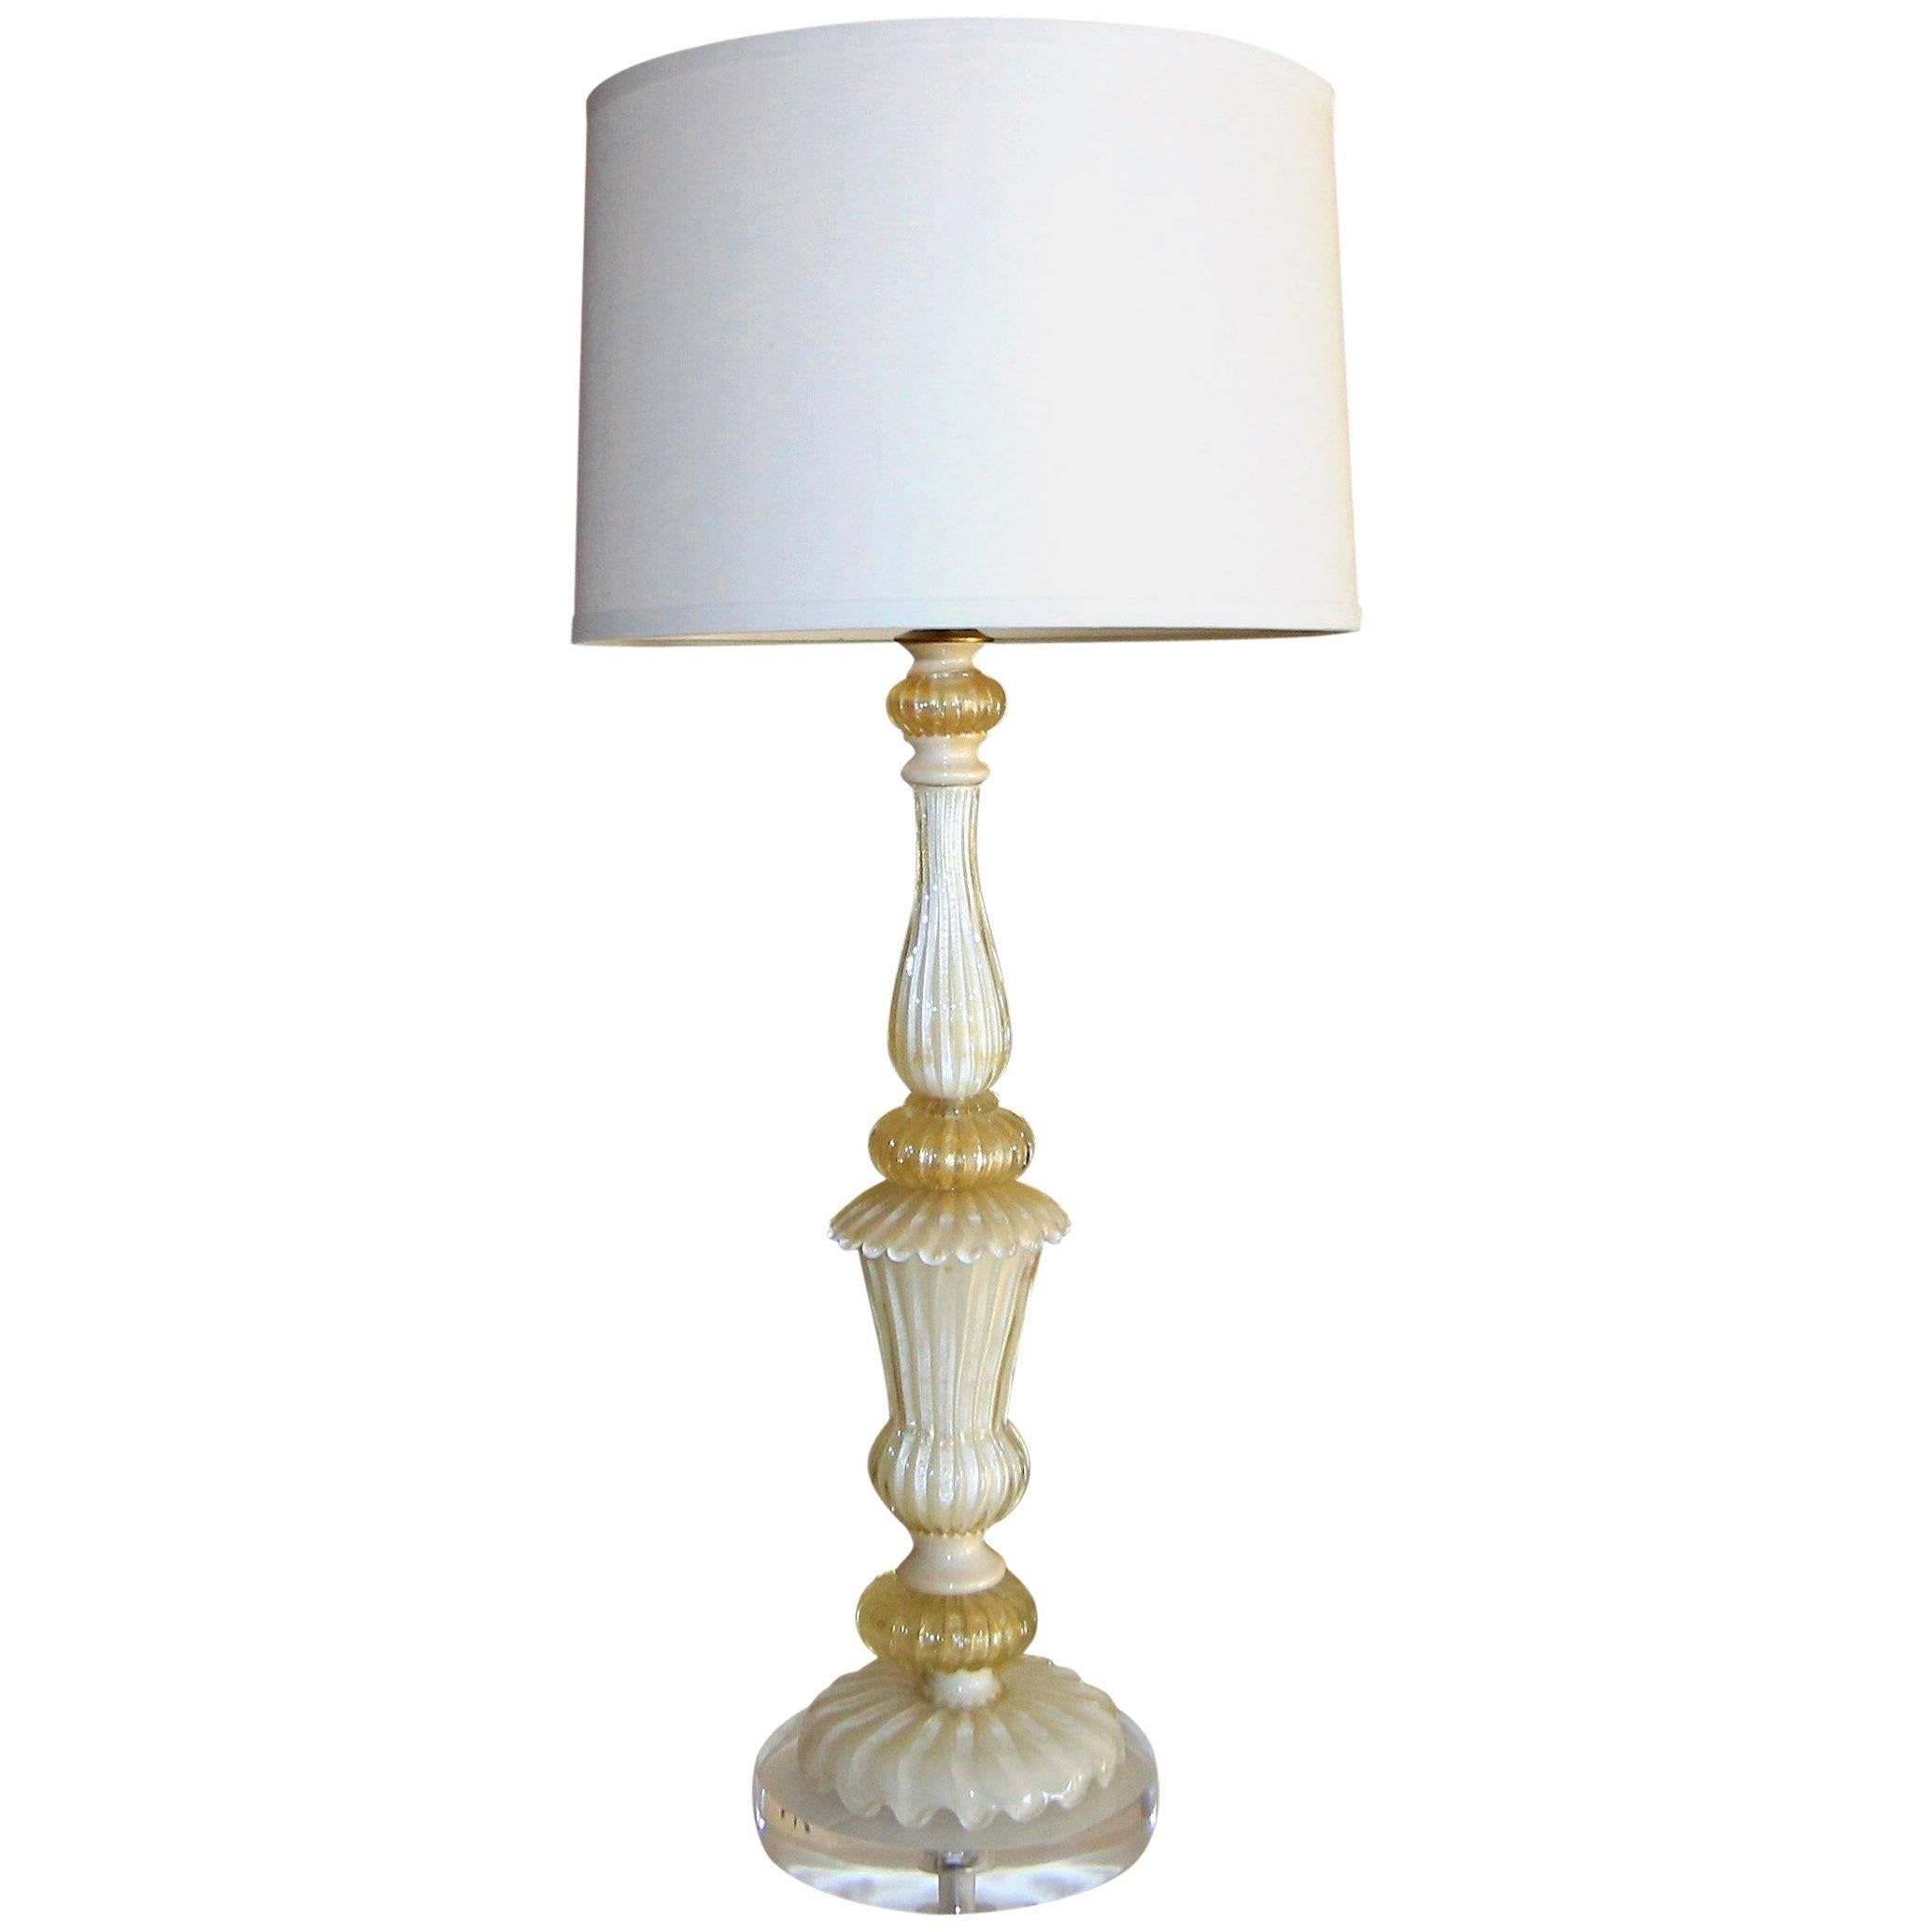 Murano Italian Glass White Gold Table Lamp